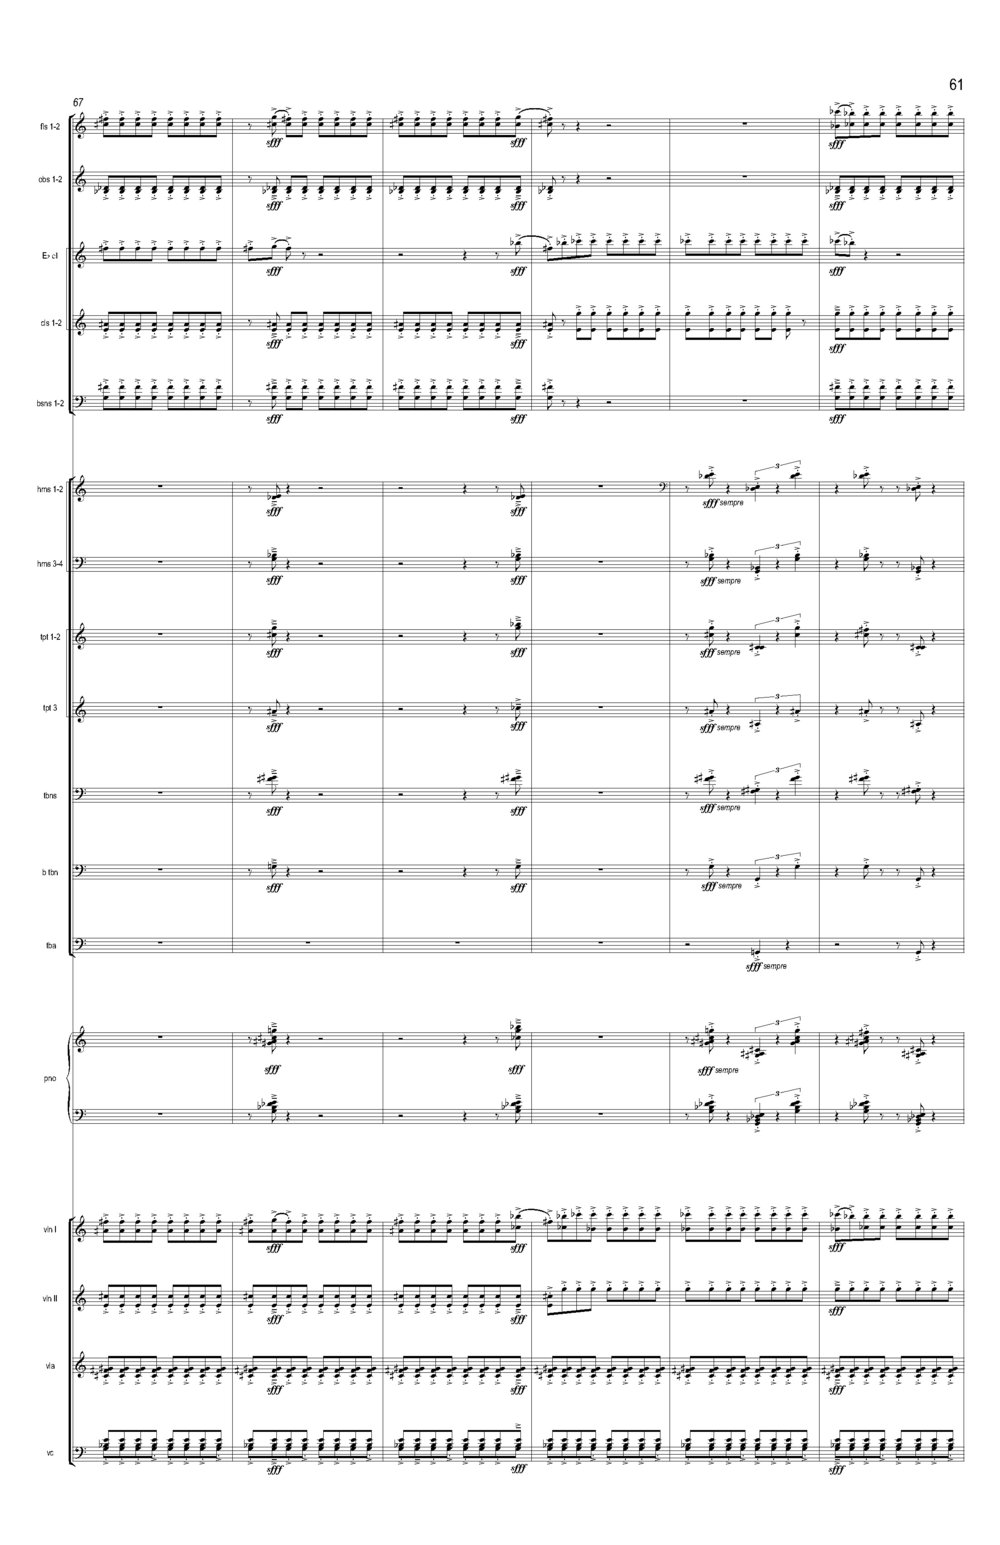 Ciach_Collective Uncommon REVISED_Full Score (Feb 2017)_Seite_67.jpg